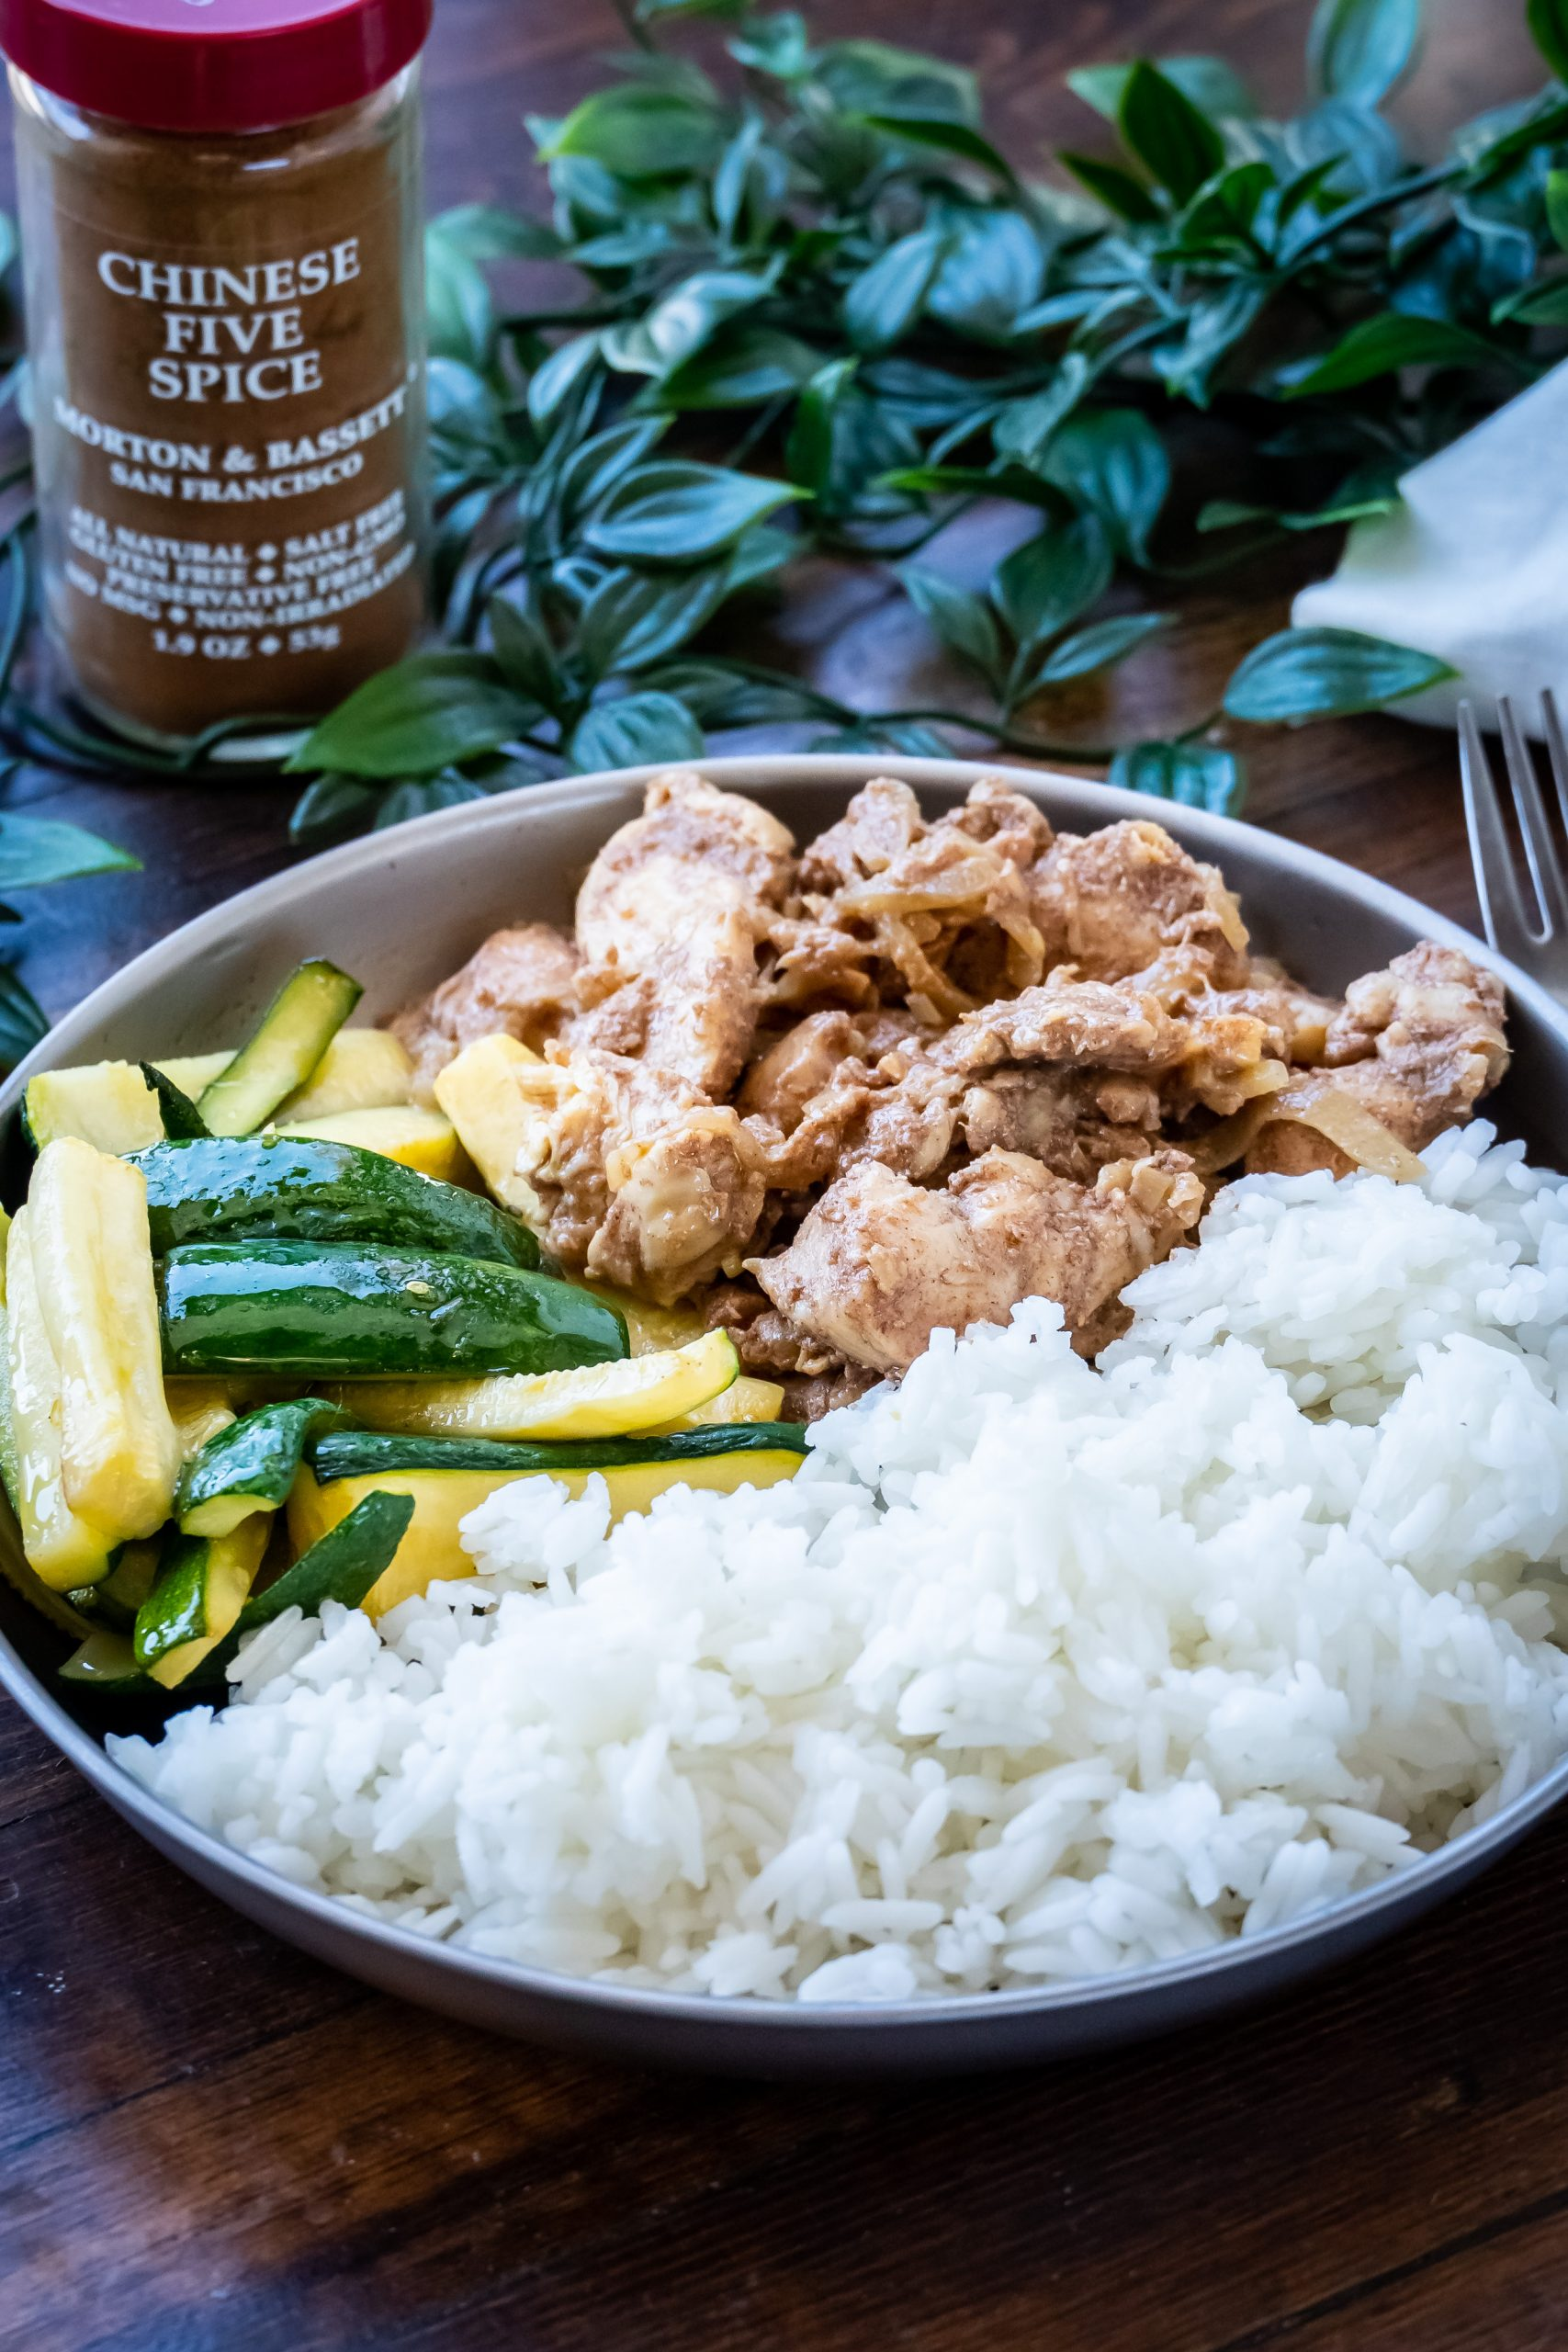 Chinese Five Spice Chicken with spice blend